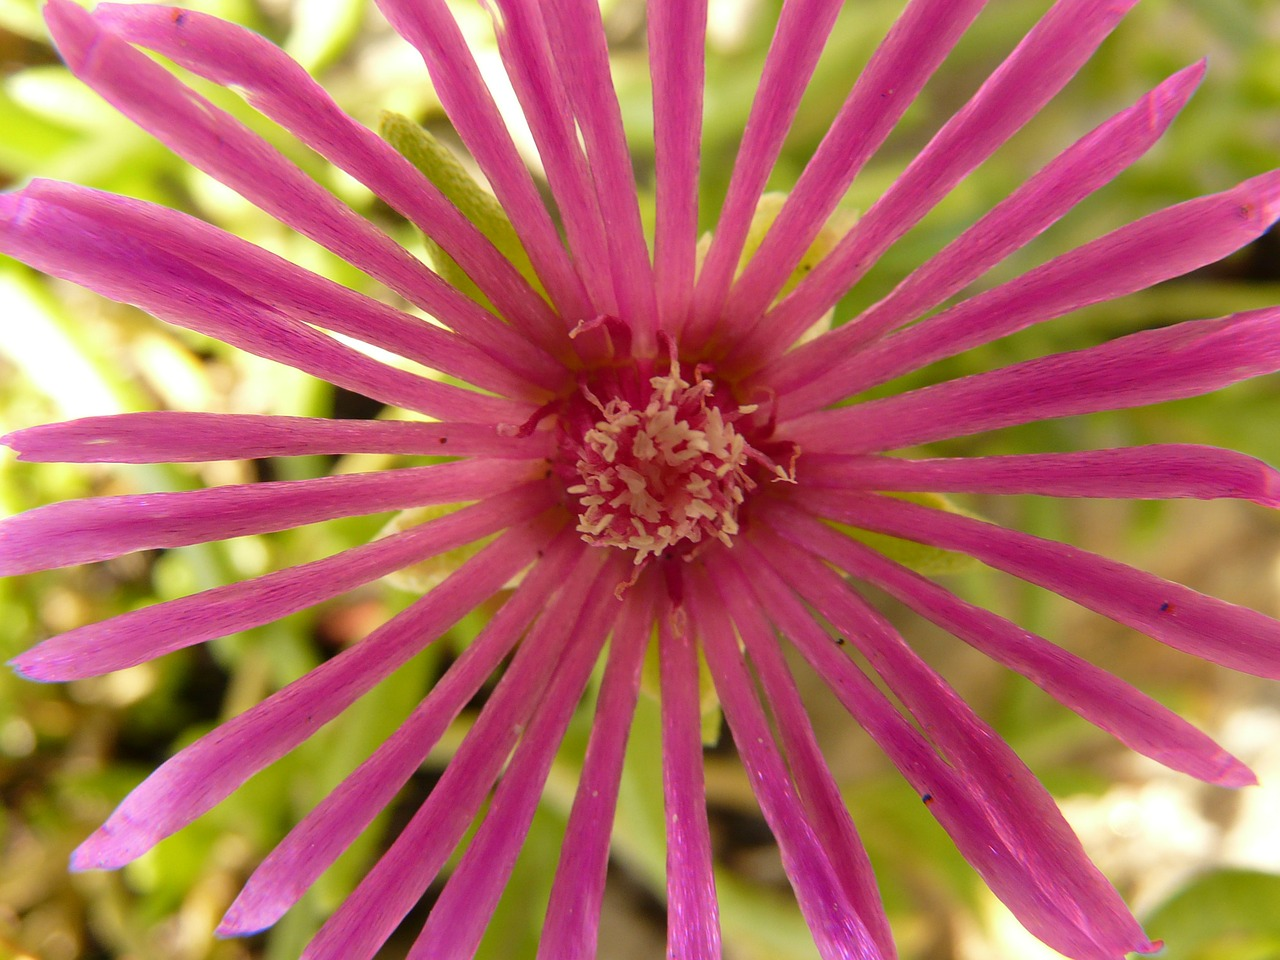 flower nature plant free photo